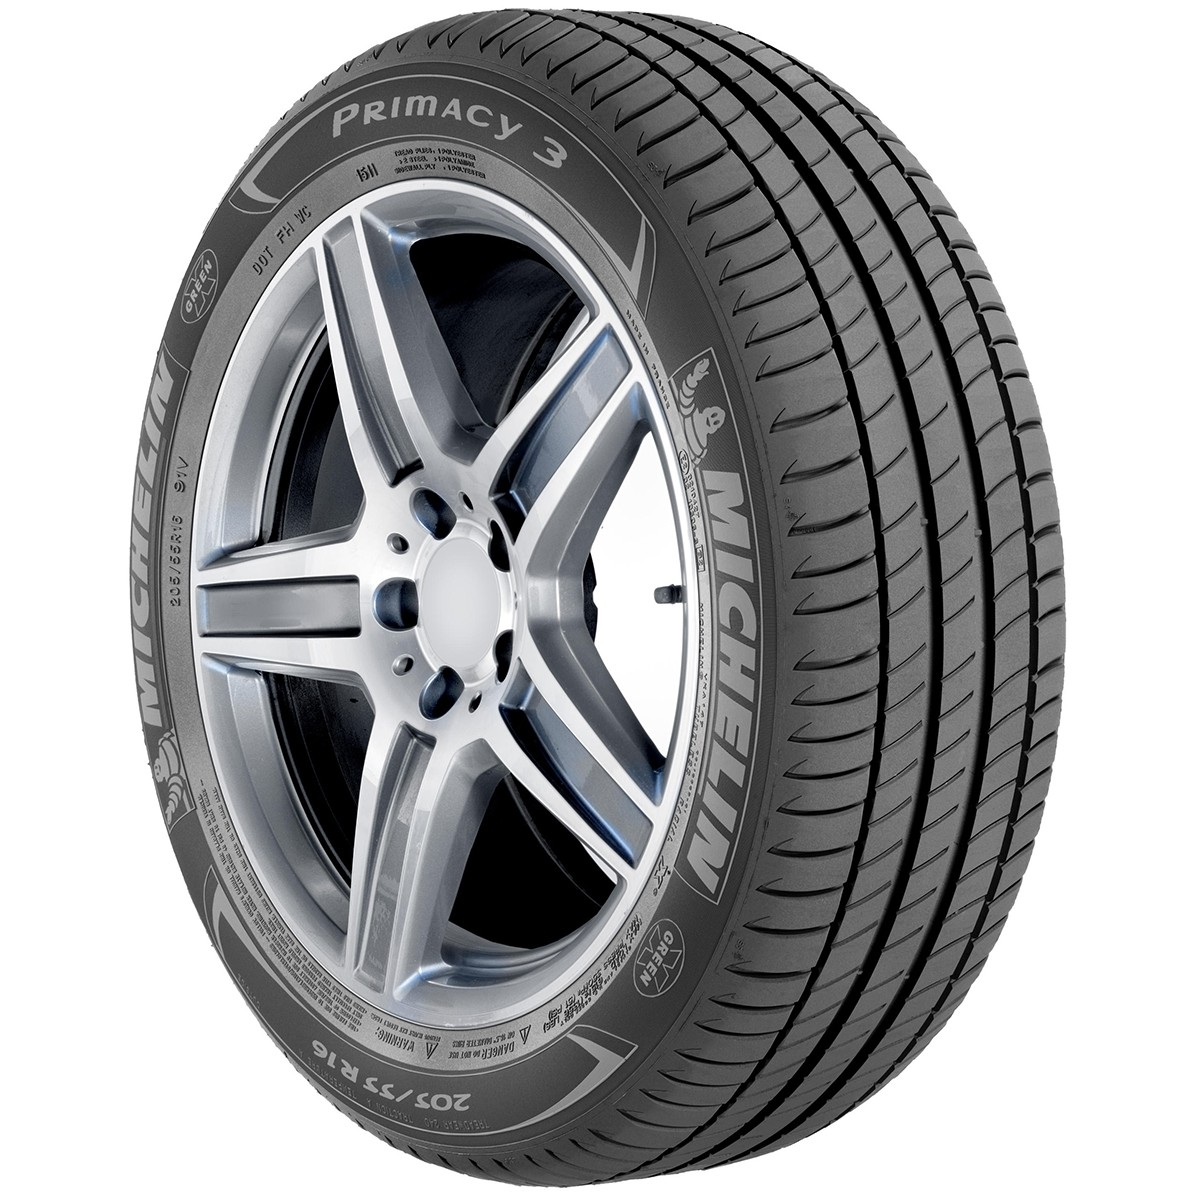 225/55 R18 [98] V PRIMACY 3 - MICHELIN